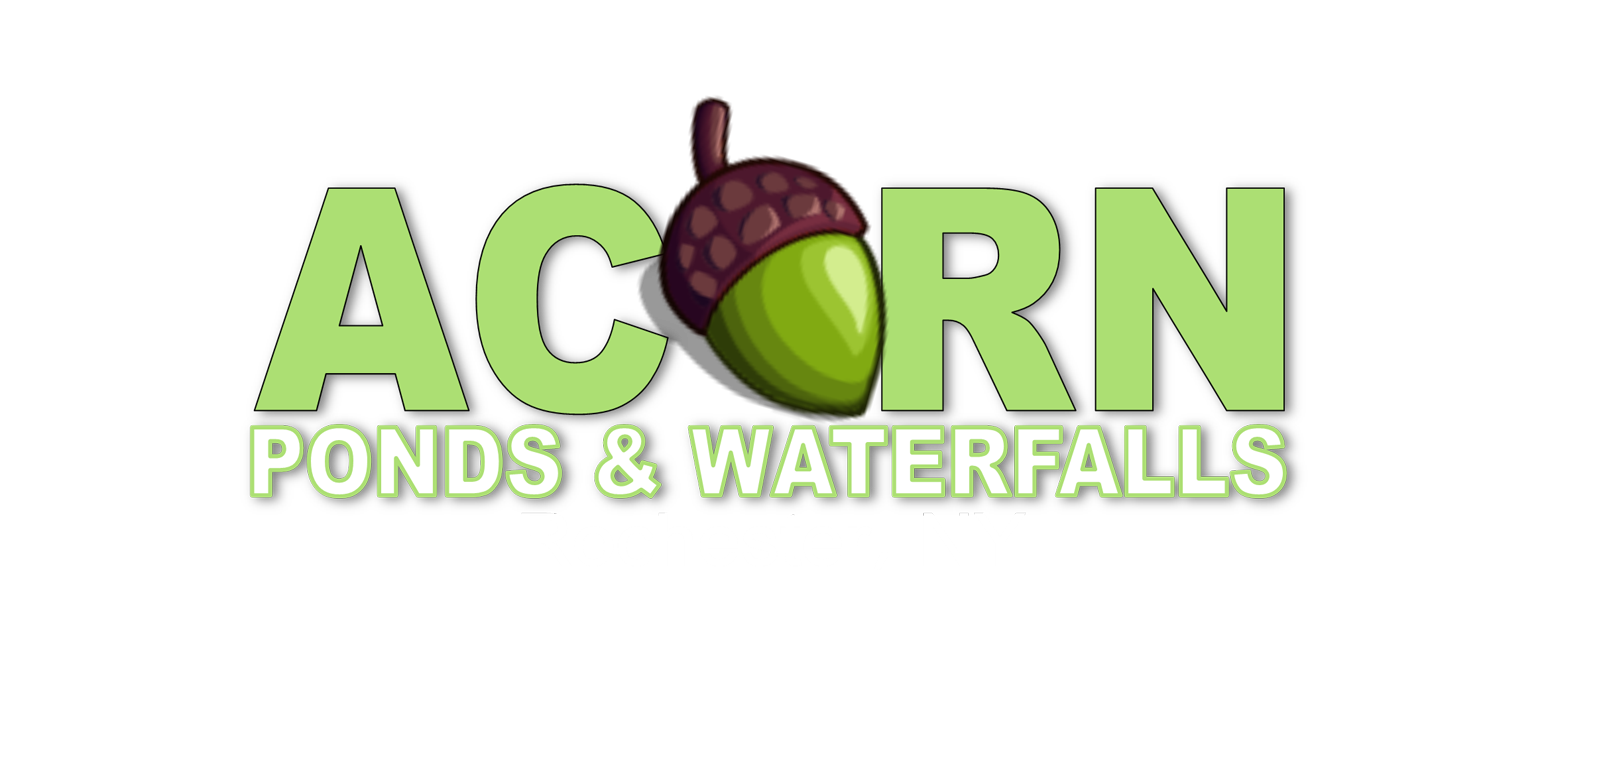 Backyard Fish Pond - Pondless Water Feature Contractor/Company Rochester NY - Acorn Ponds & Waterfalls